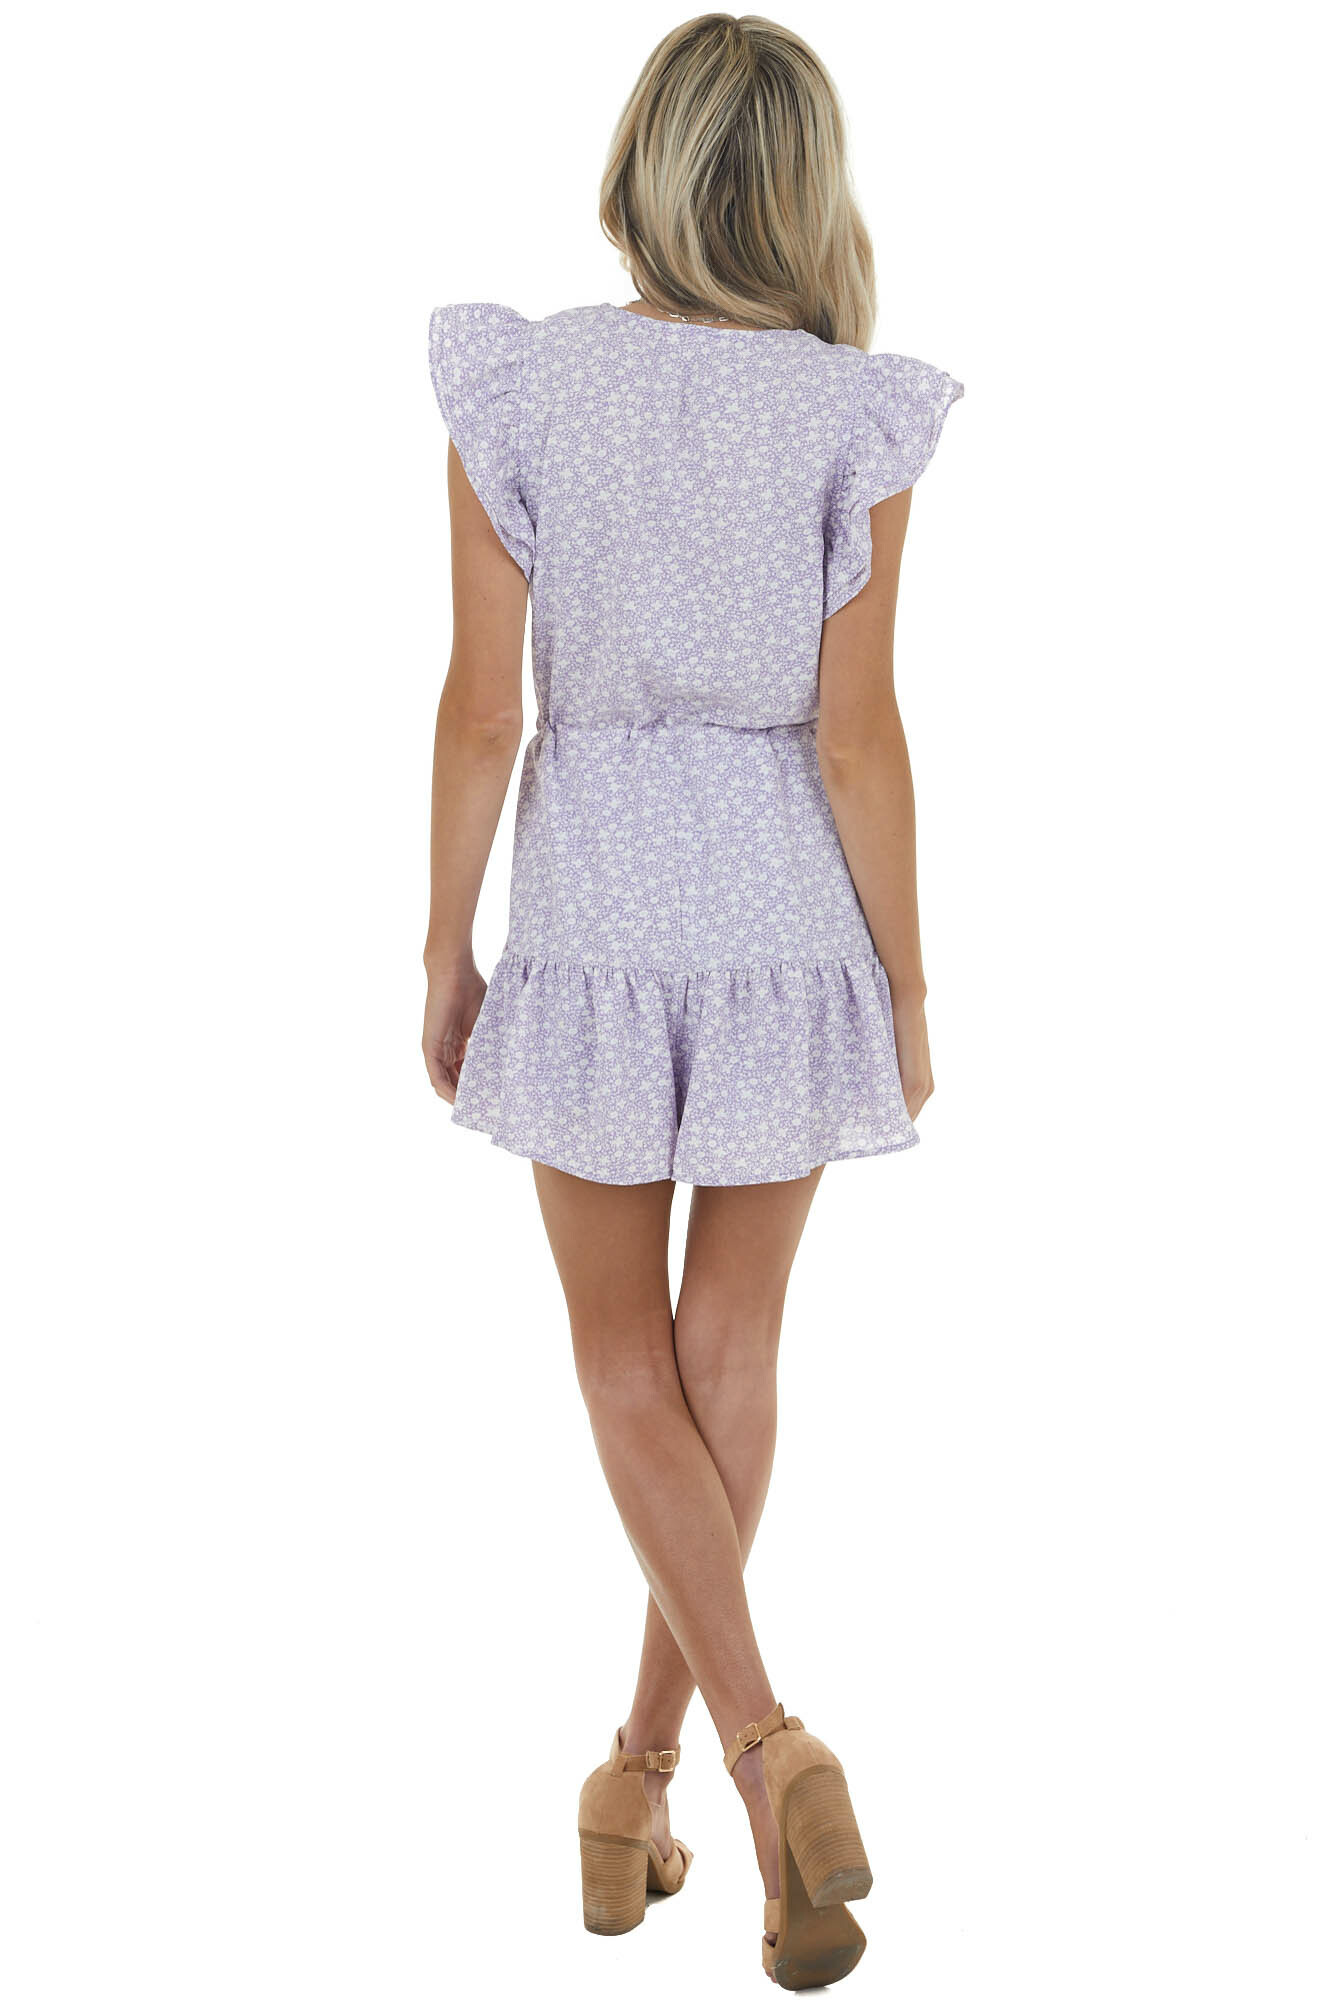 Iris Ditsy Floral Cinch Waist Romper with Ruffle Details